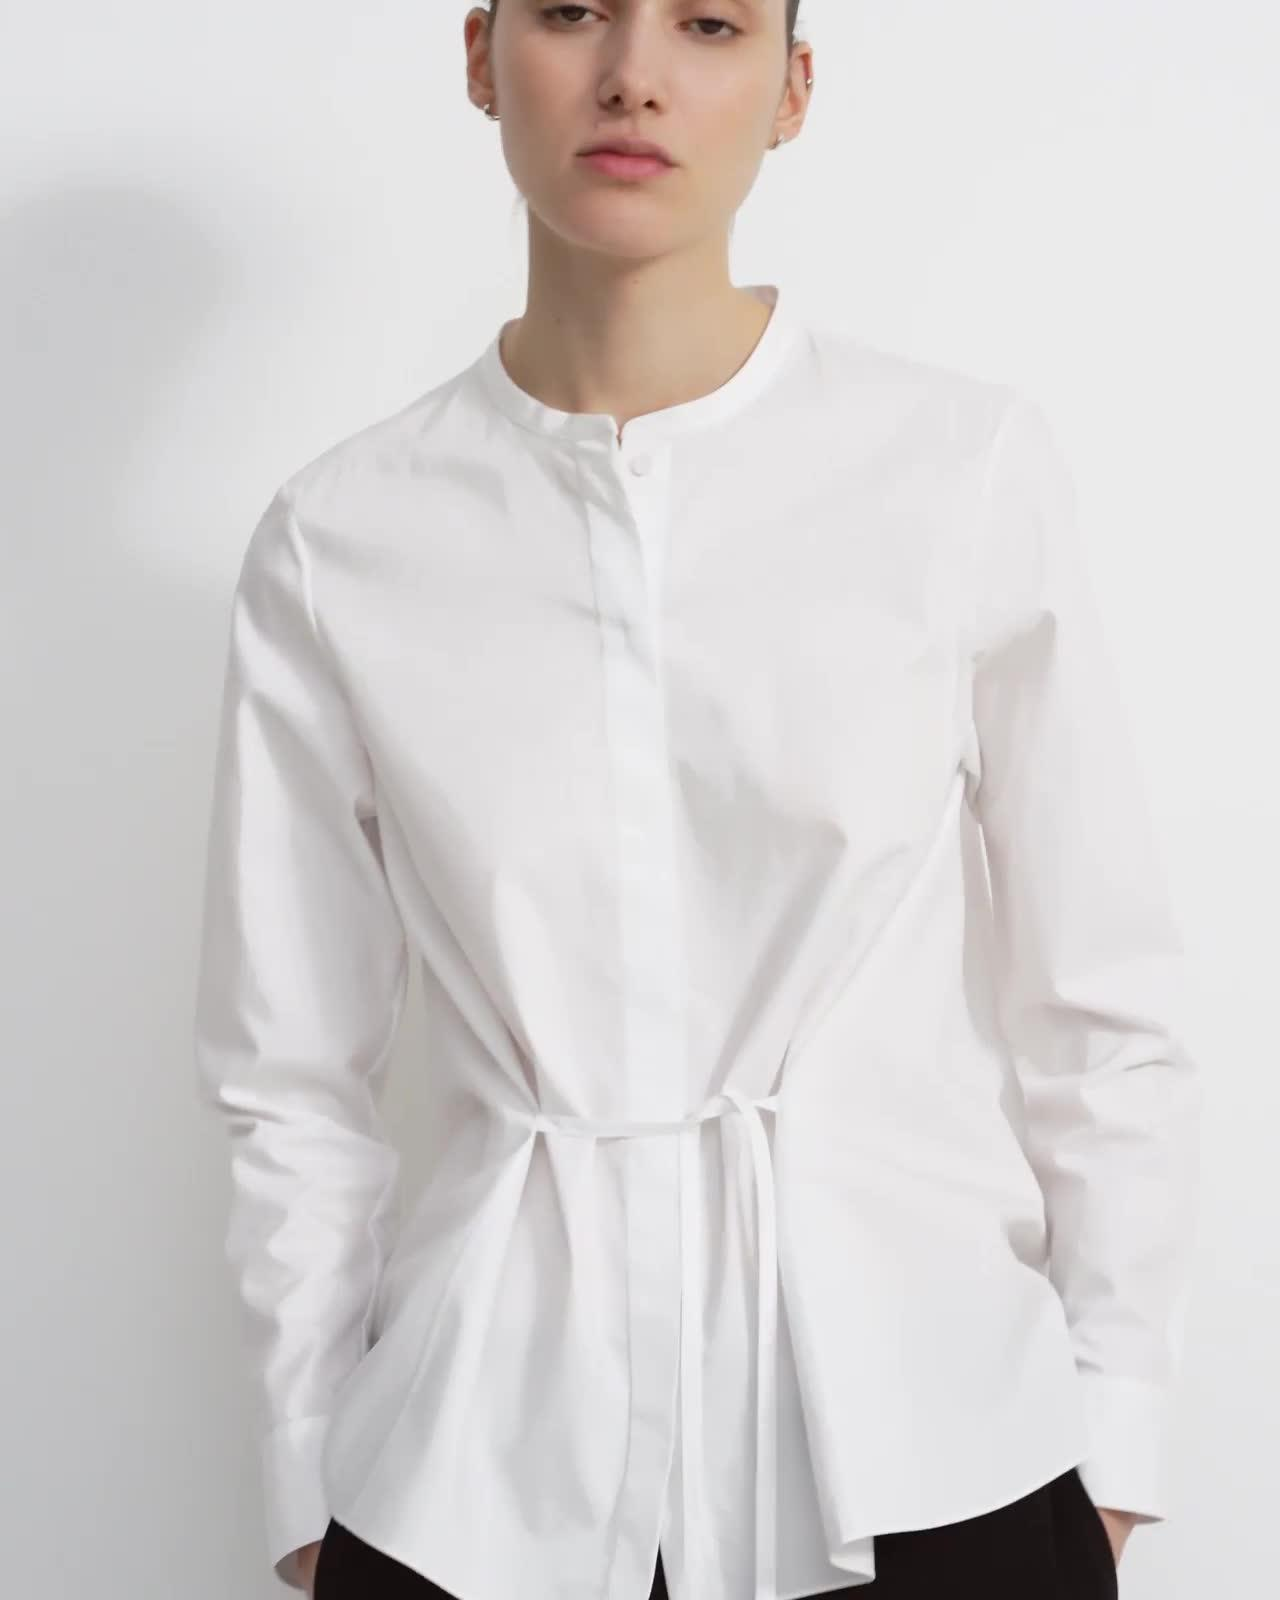 Cinched Shirt in Good Cotton 4